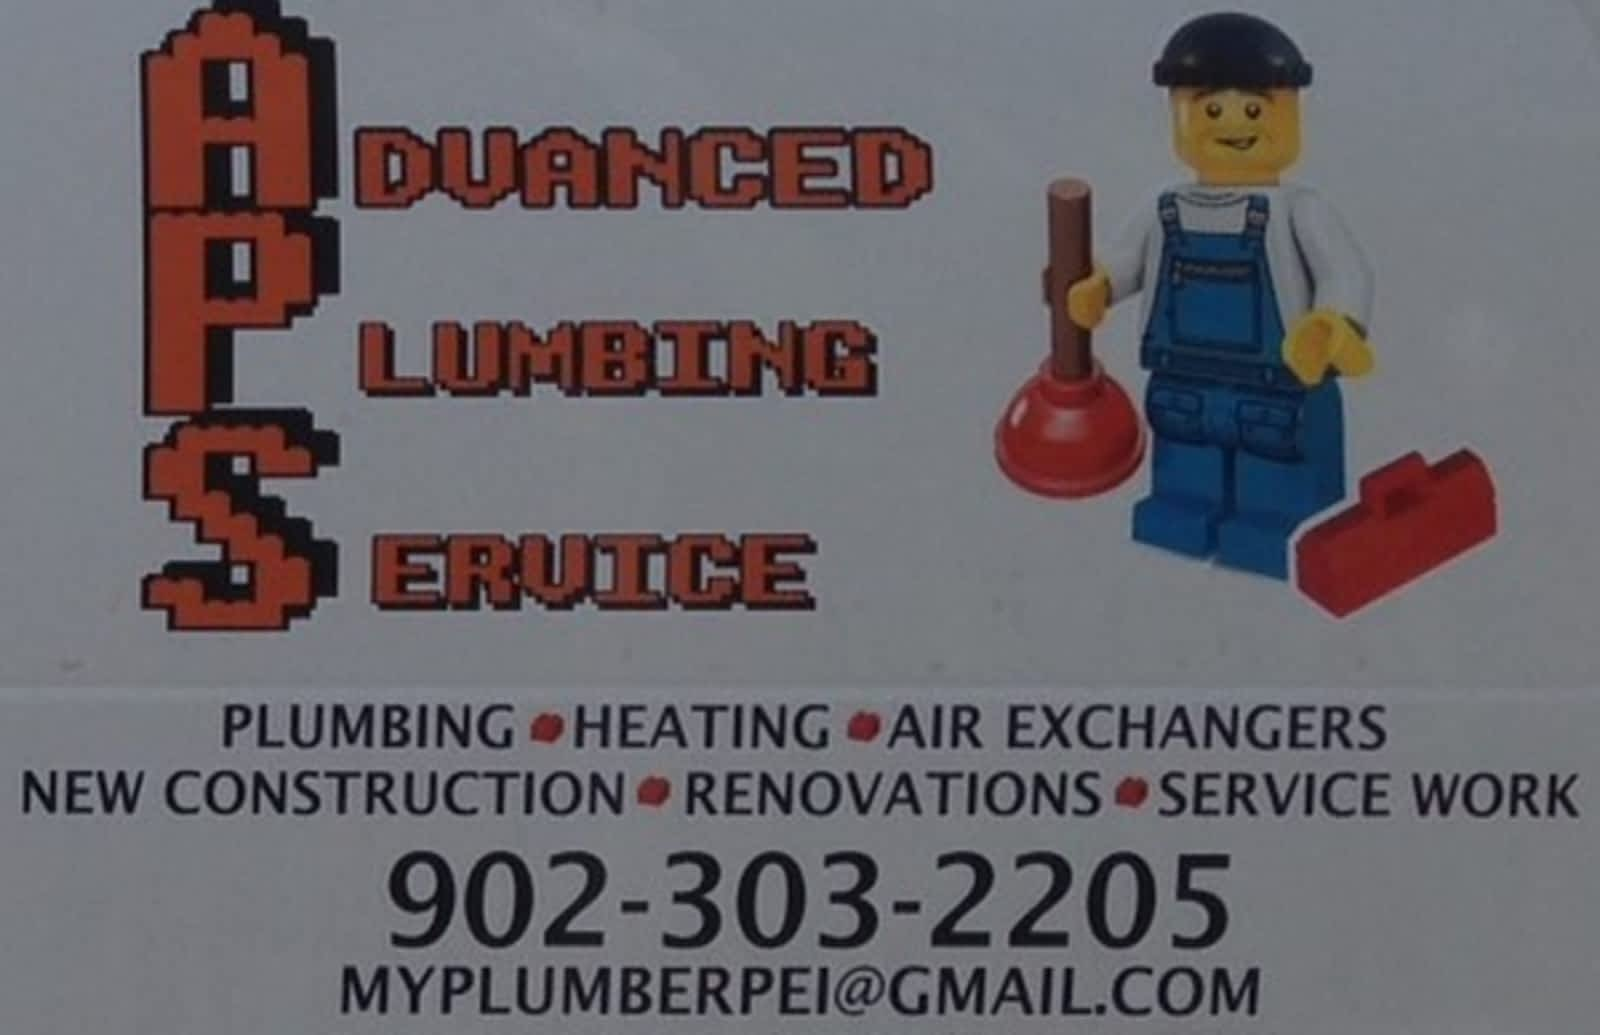 Advanced Plumbing Service Inc - Opening Hours - 843 Read Dr ... on house doors design, house tile design, house skylight design, house architectural design, house chimney design, house autocad, house molding design, house windows design, house art design, house fireplaces design, house water connection design, house roofline design, house renovations design, house engineering design, house painting design, house roofing design, house flooring design, house ductwork design, house recording studio design, house decks design,